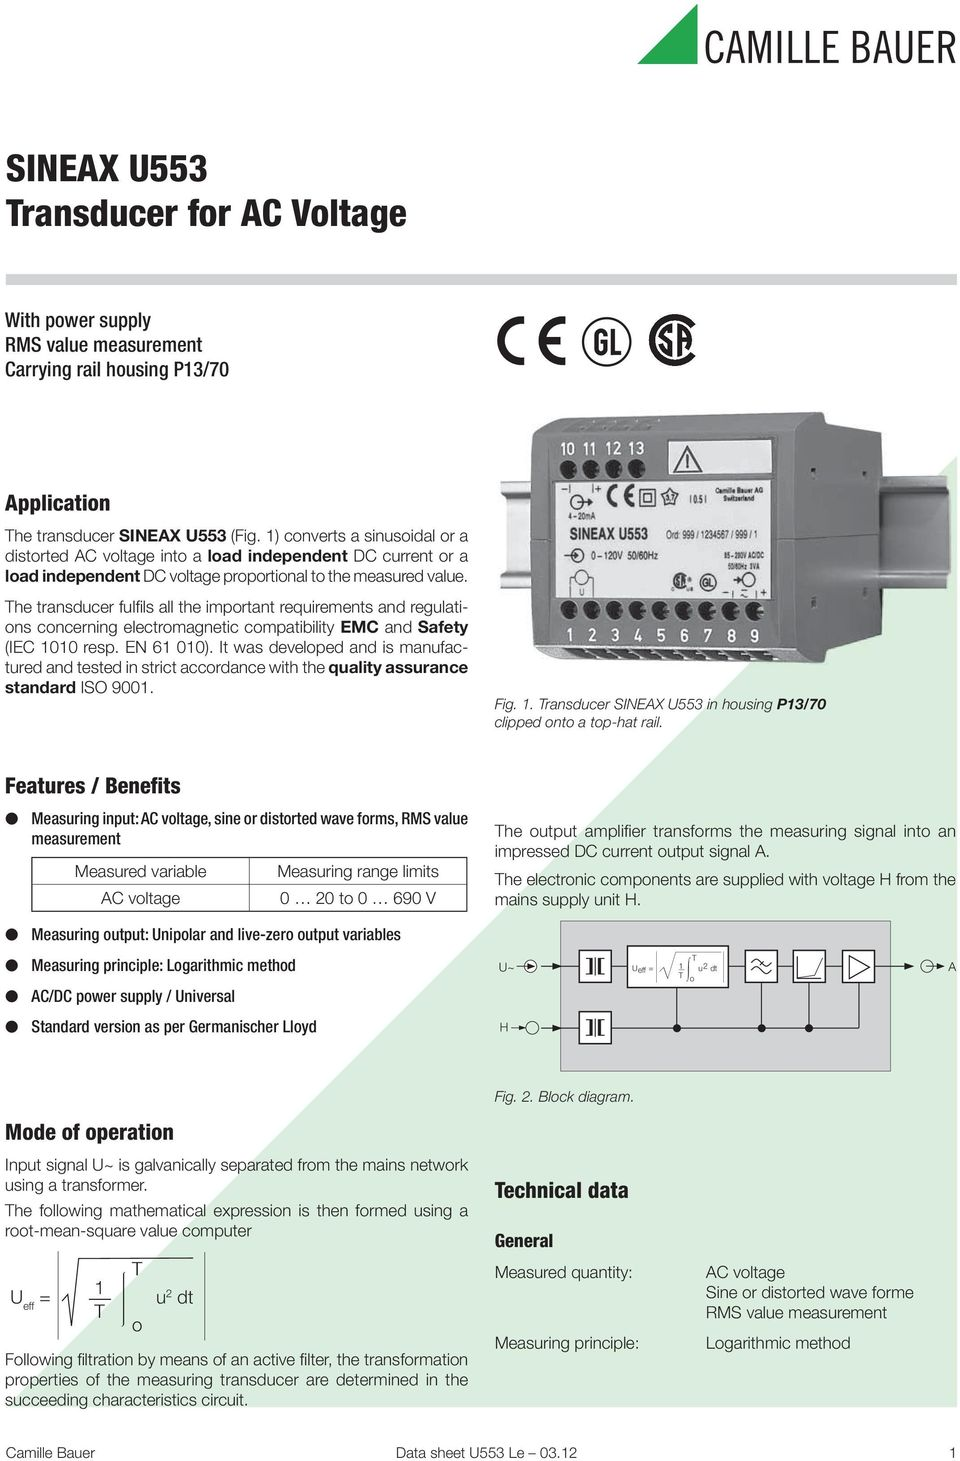 he transducer fulfi ls all the important requirements and regulations concerning electromagnetic compatibility EMC and Safety (IEC 00 resp. EN 00).